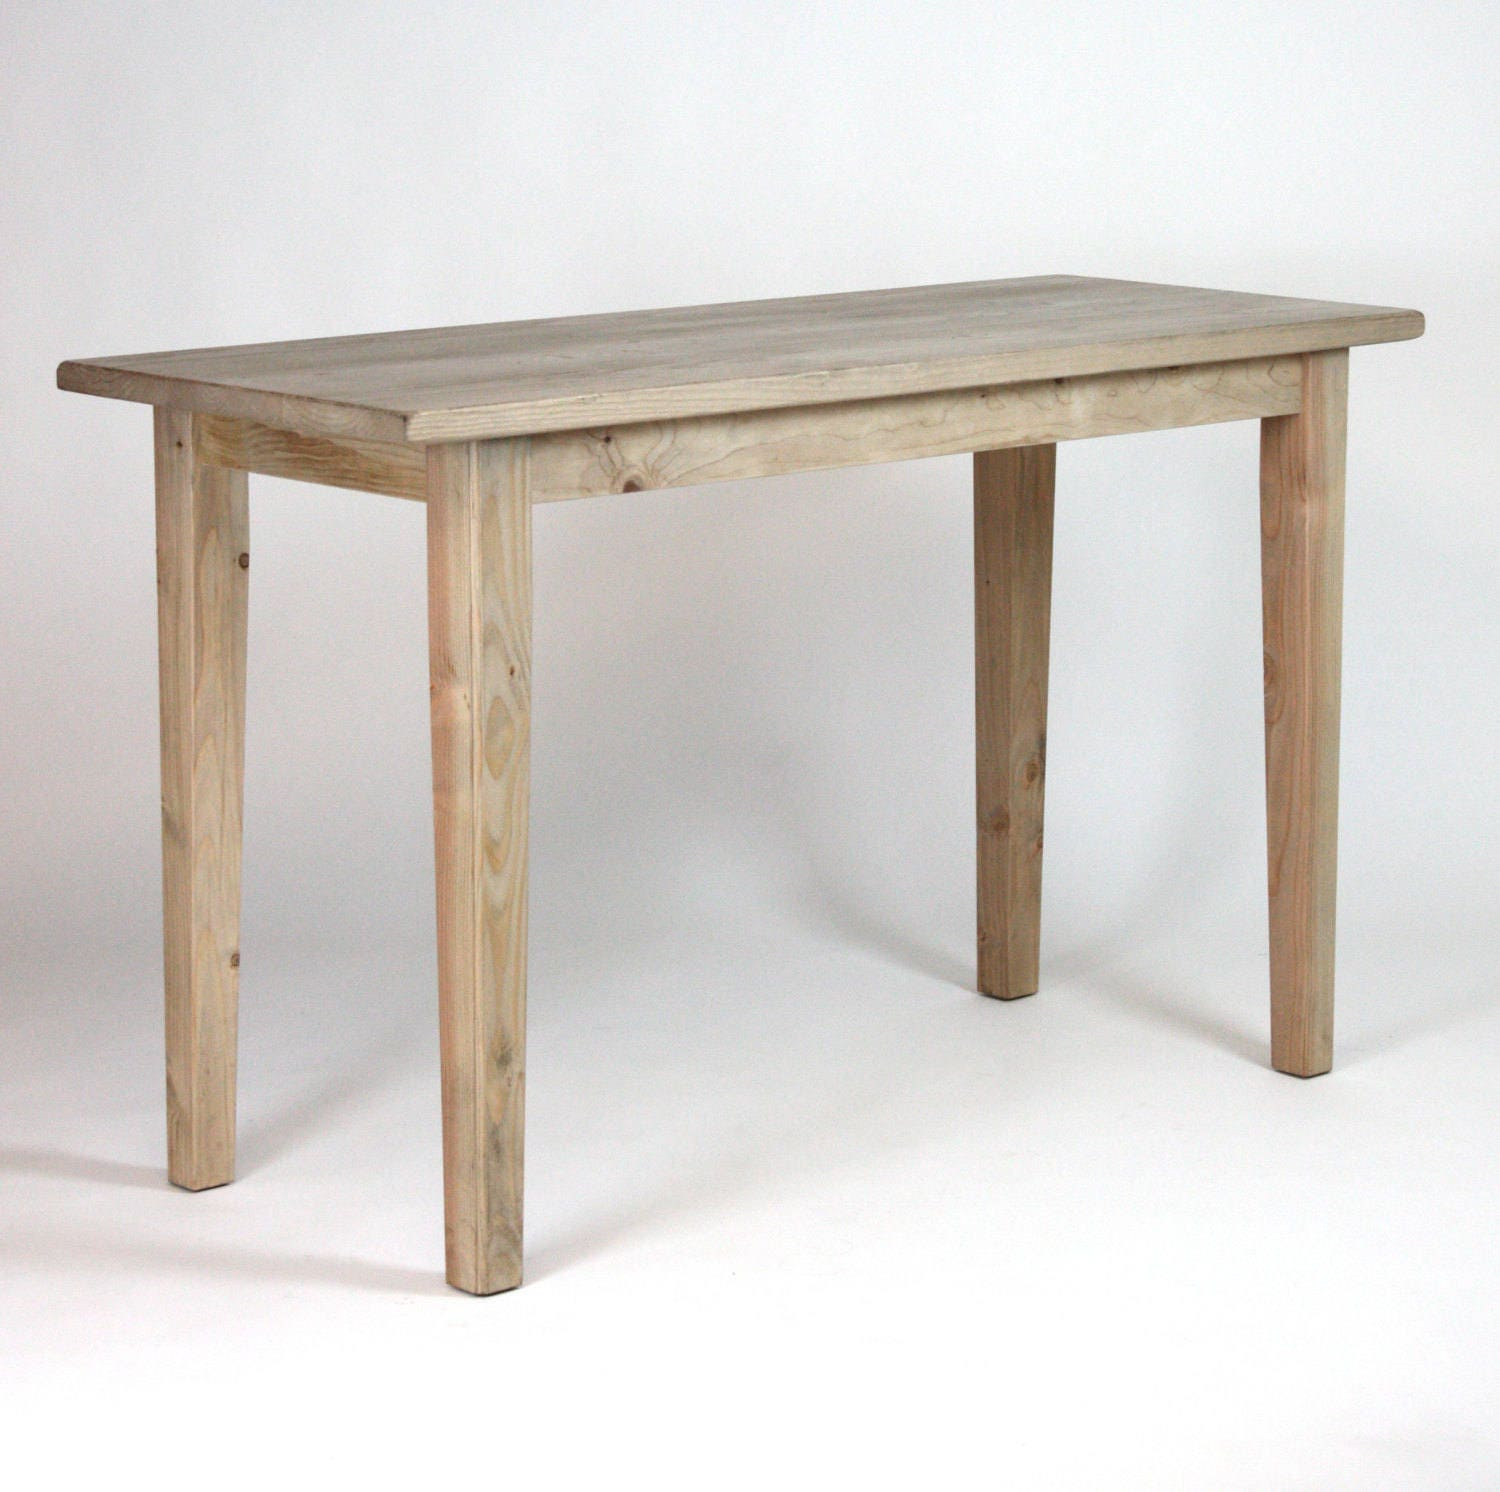 Kitchen Island Taller Than Counters: Small French Kitchen Island Petite Counter Height Table